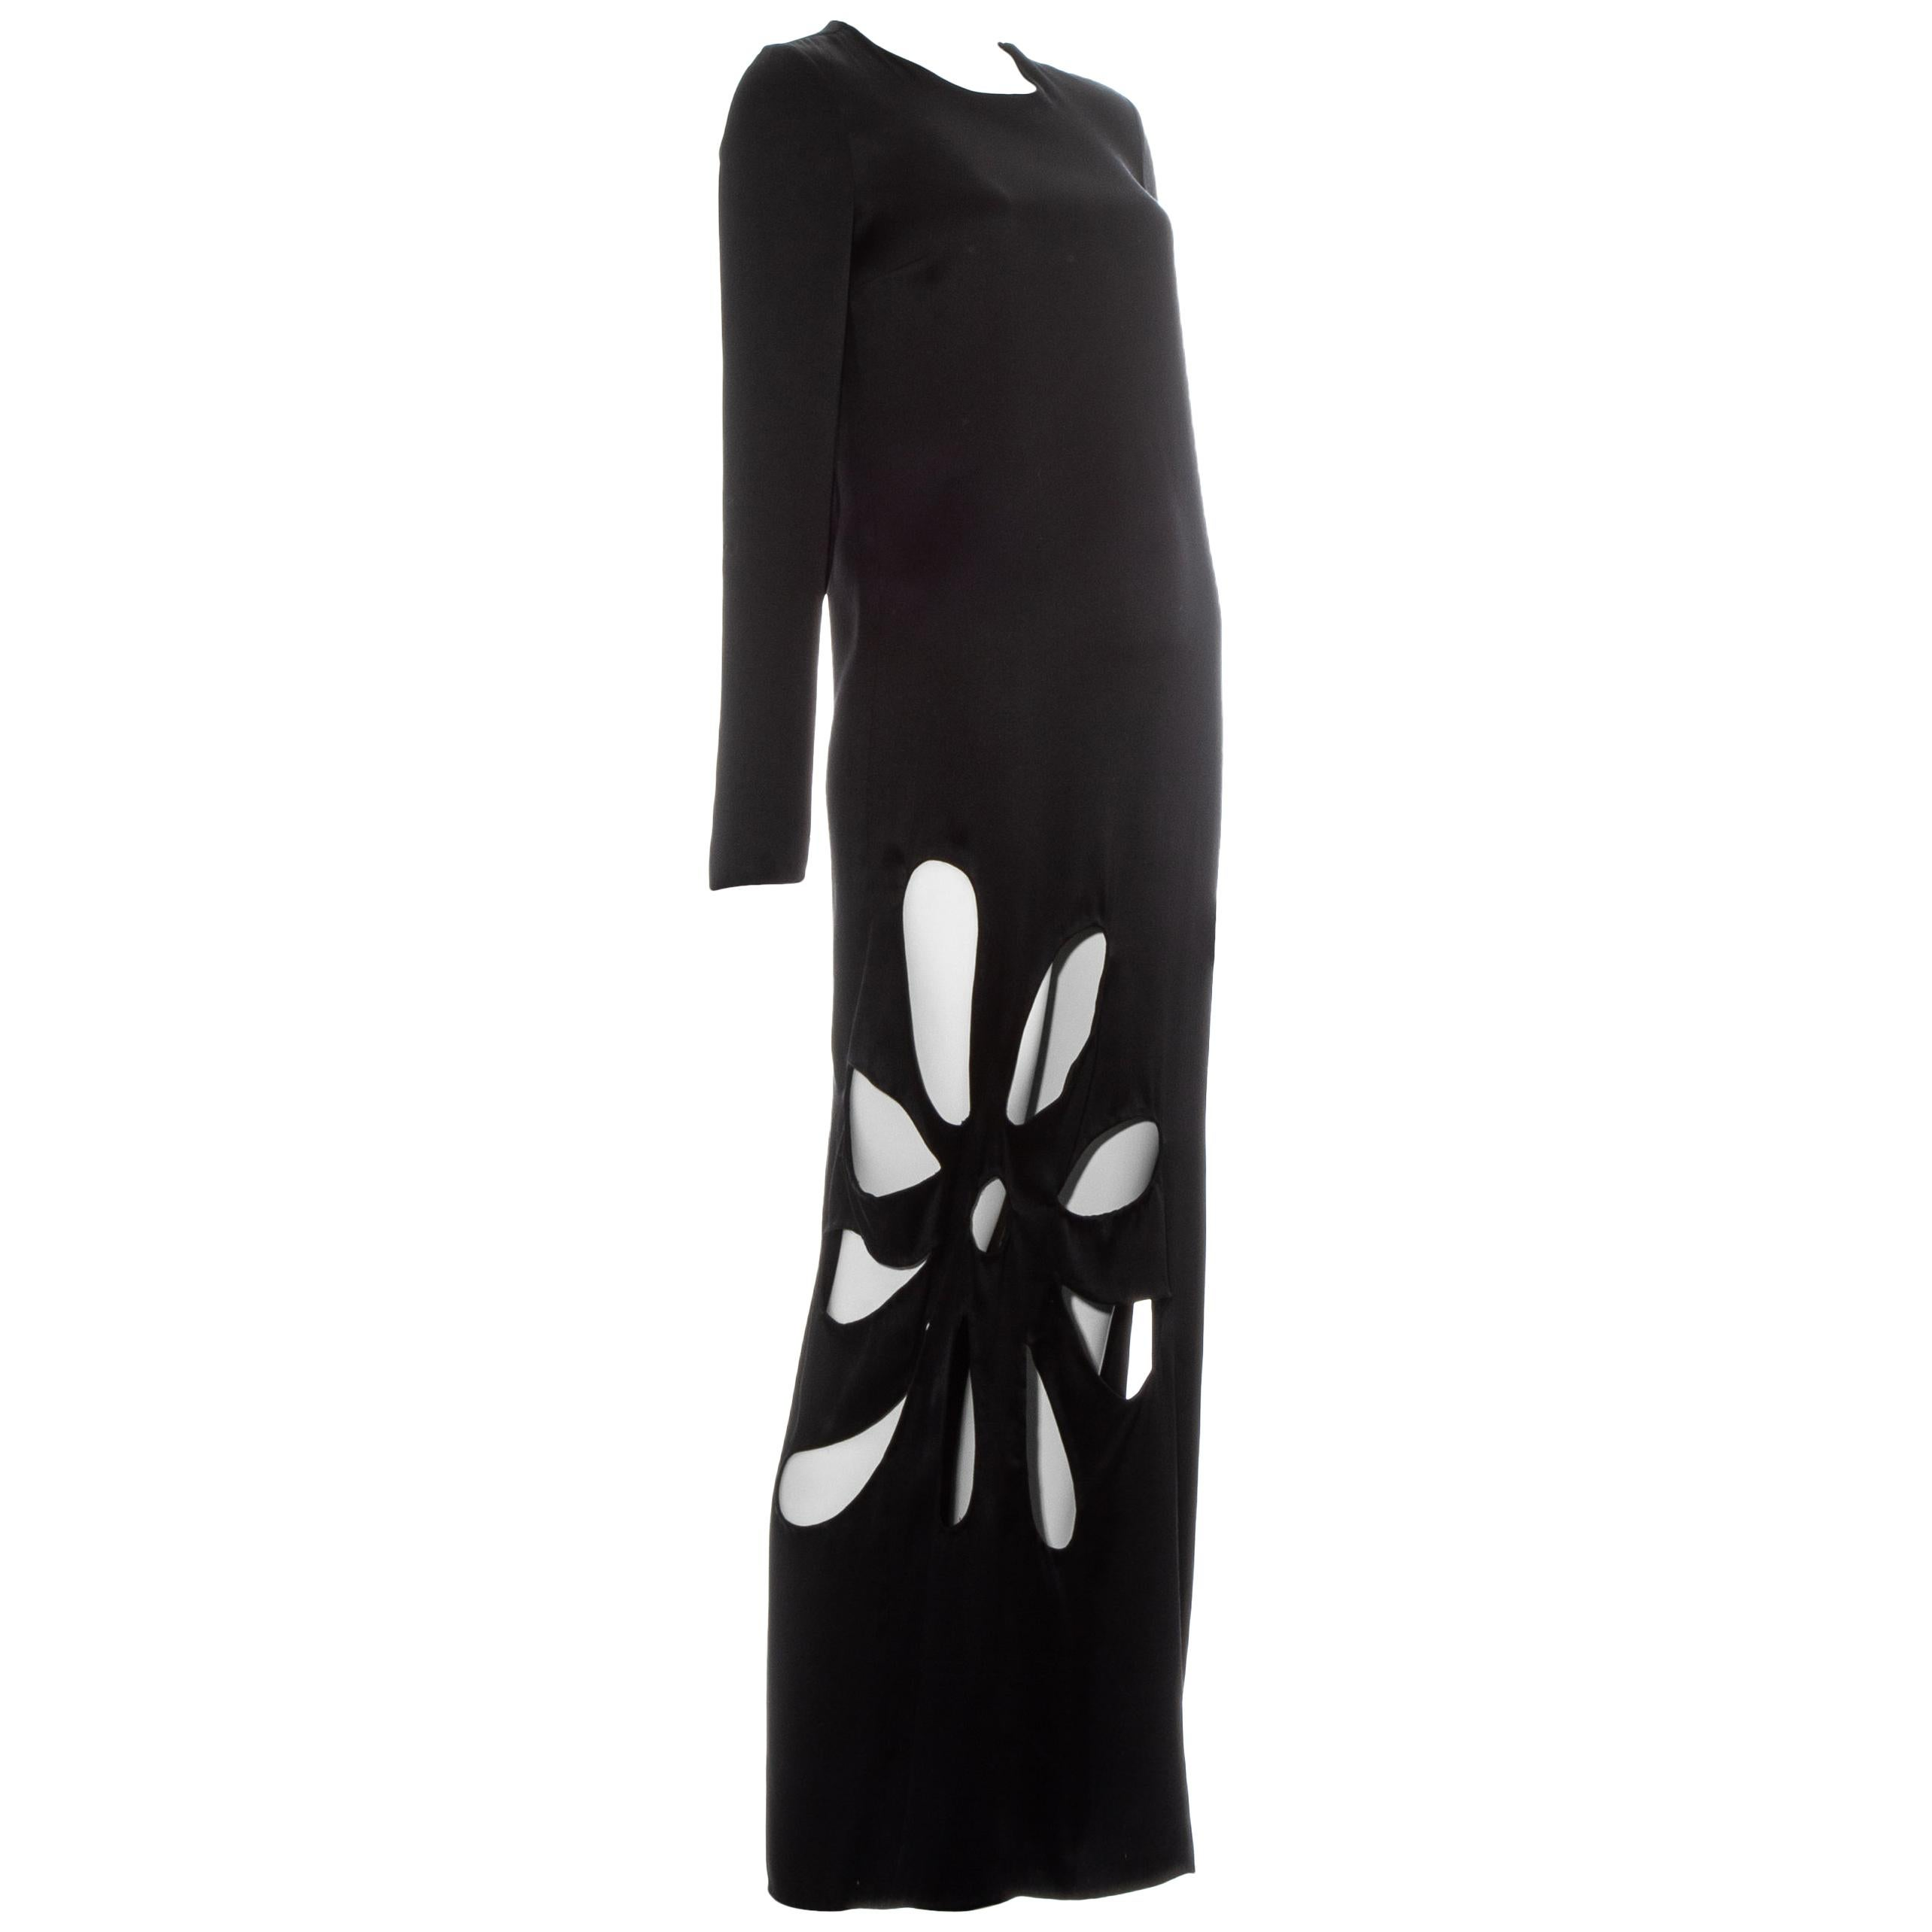 Gucci by Tom Ford black silk column dress with floral cut outs, ss 2002